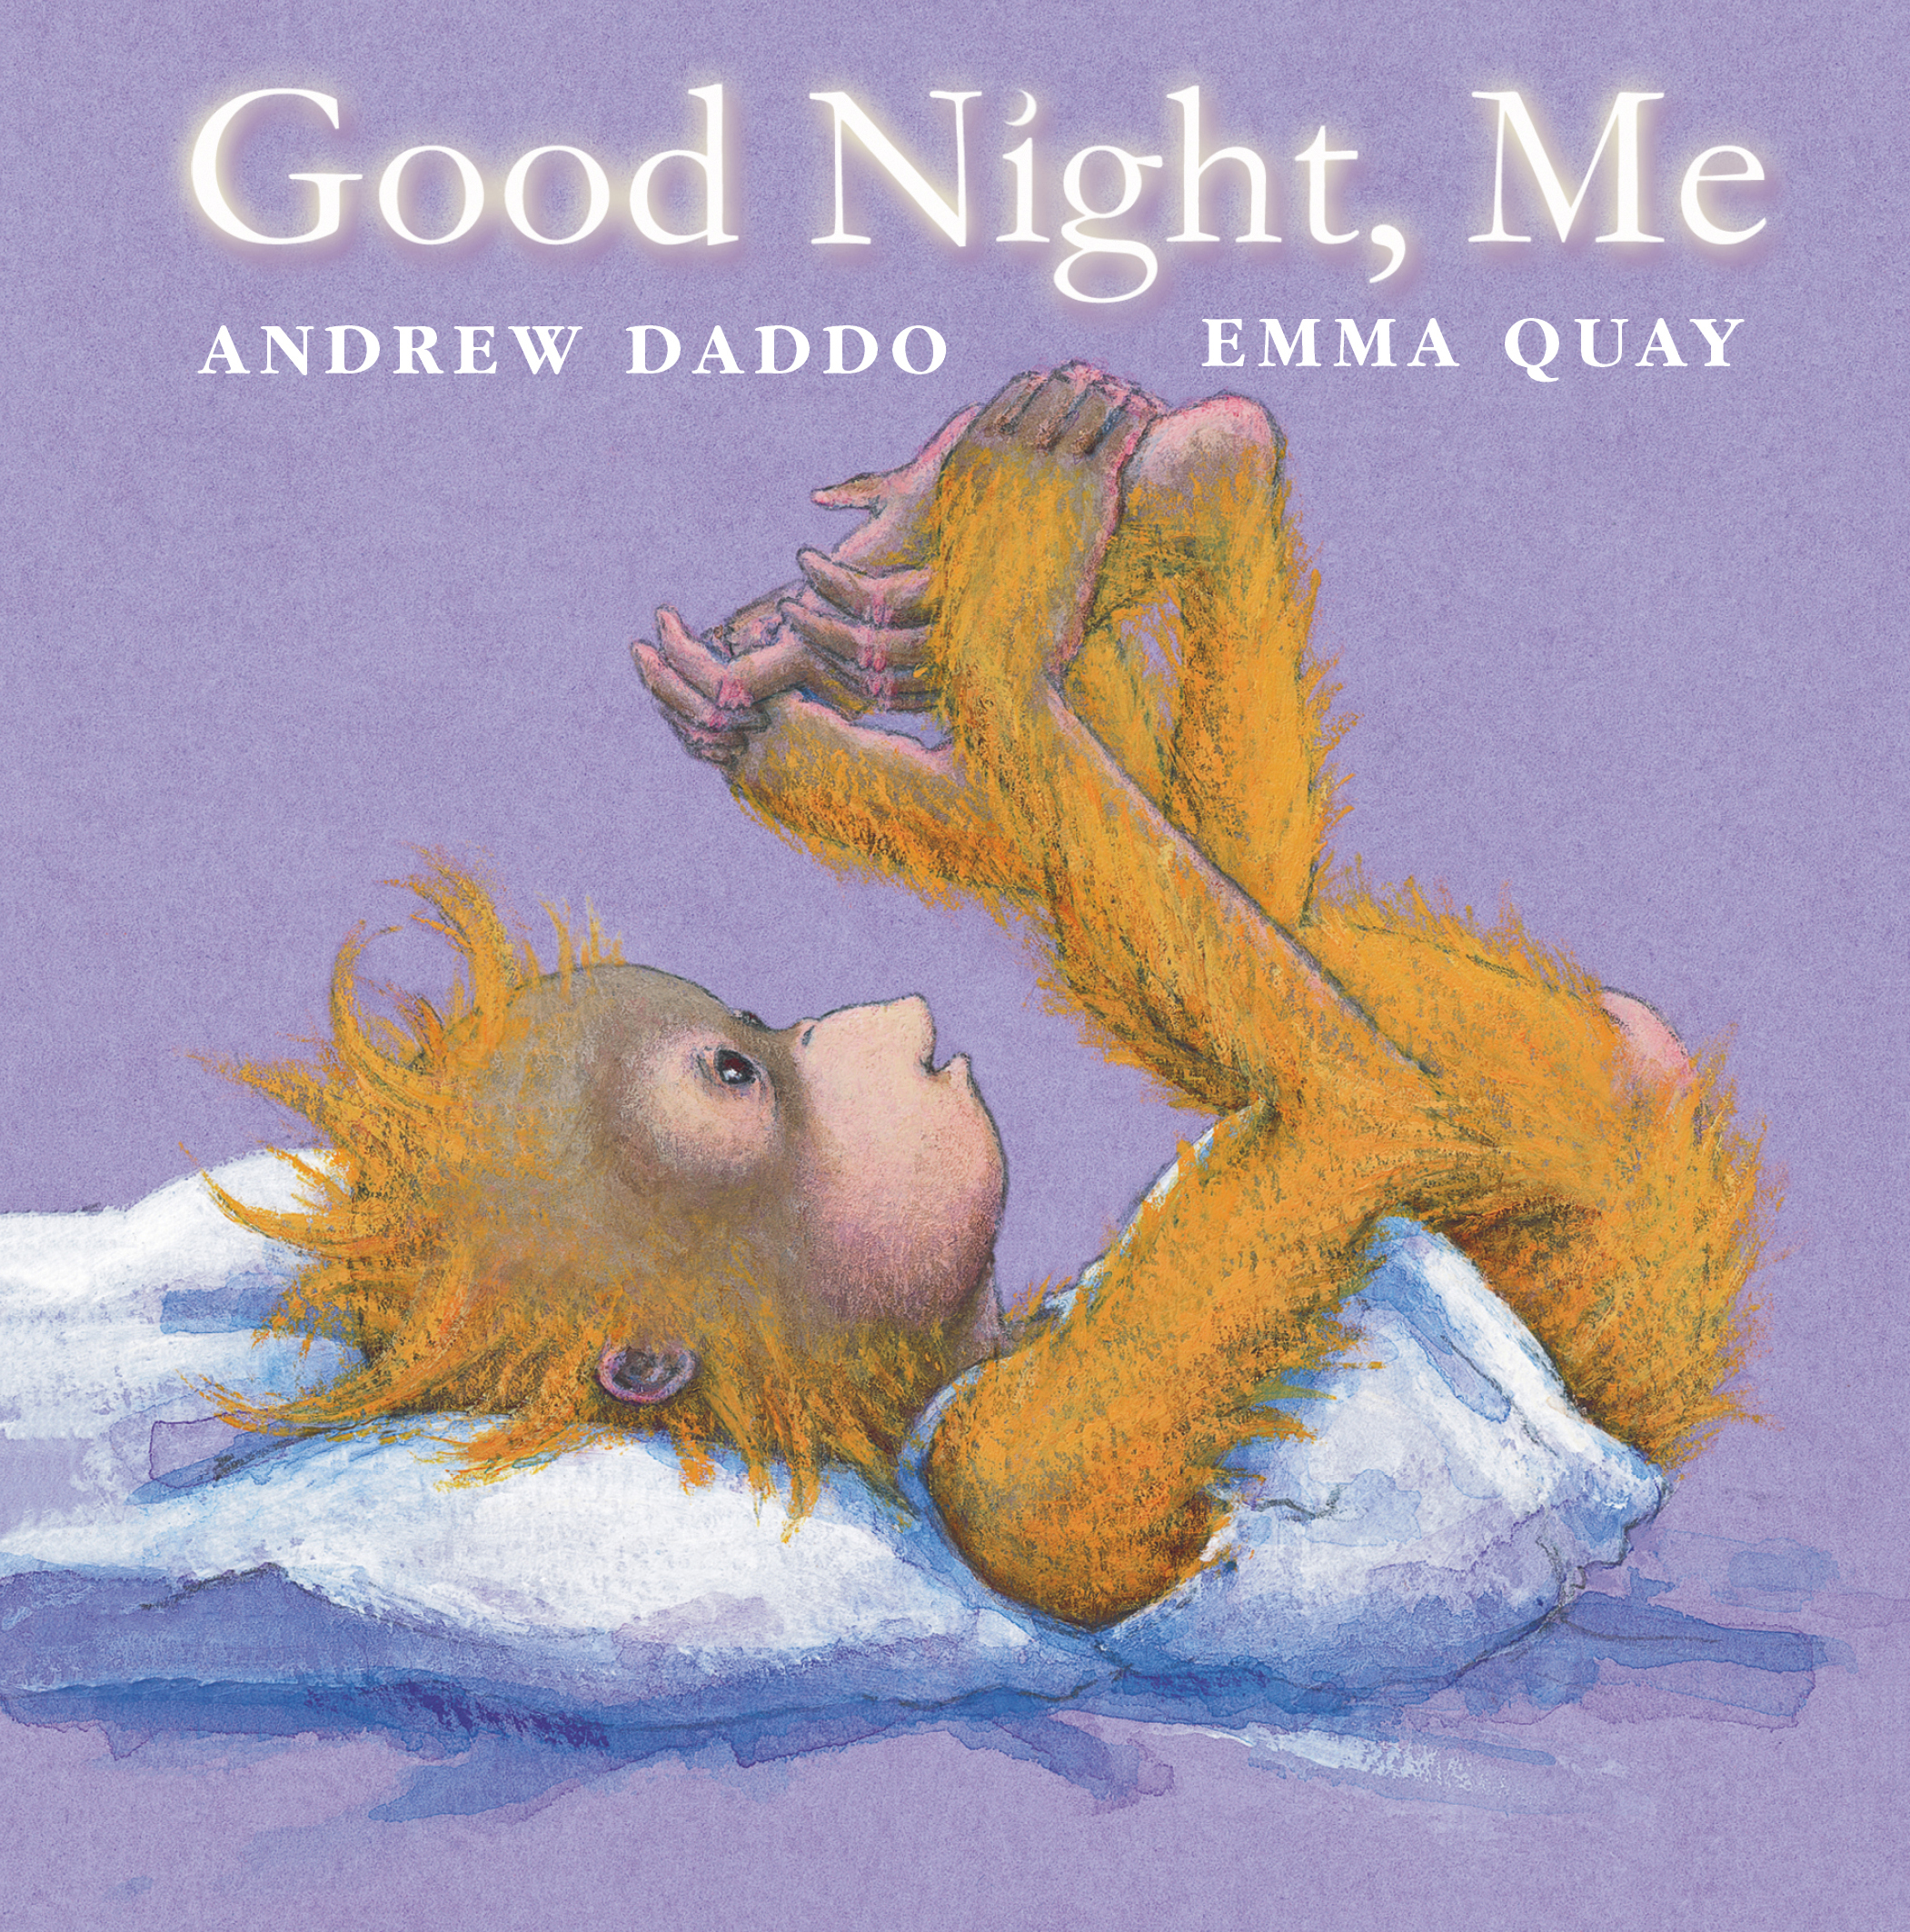 GOOD NIGHT, ME by Andrew Daddo and Emma Quay (Lothian Children's Books, Australia | Bloomsbury Children's Books USA) - www.emmaquay.com